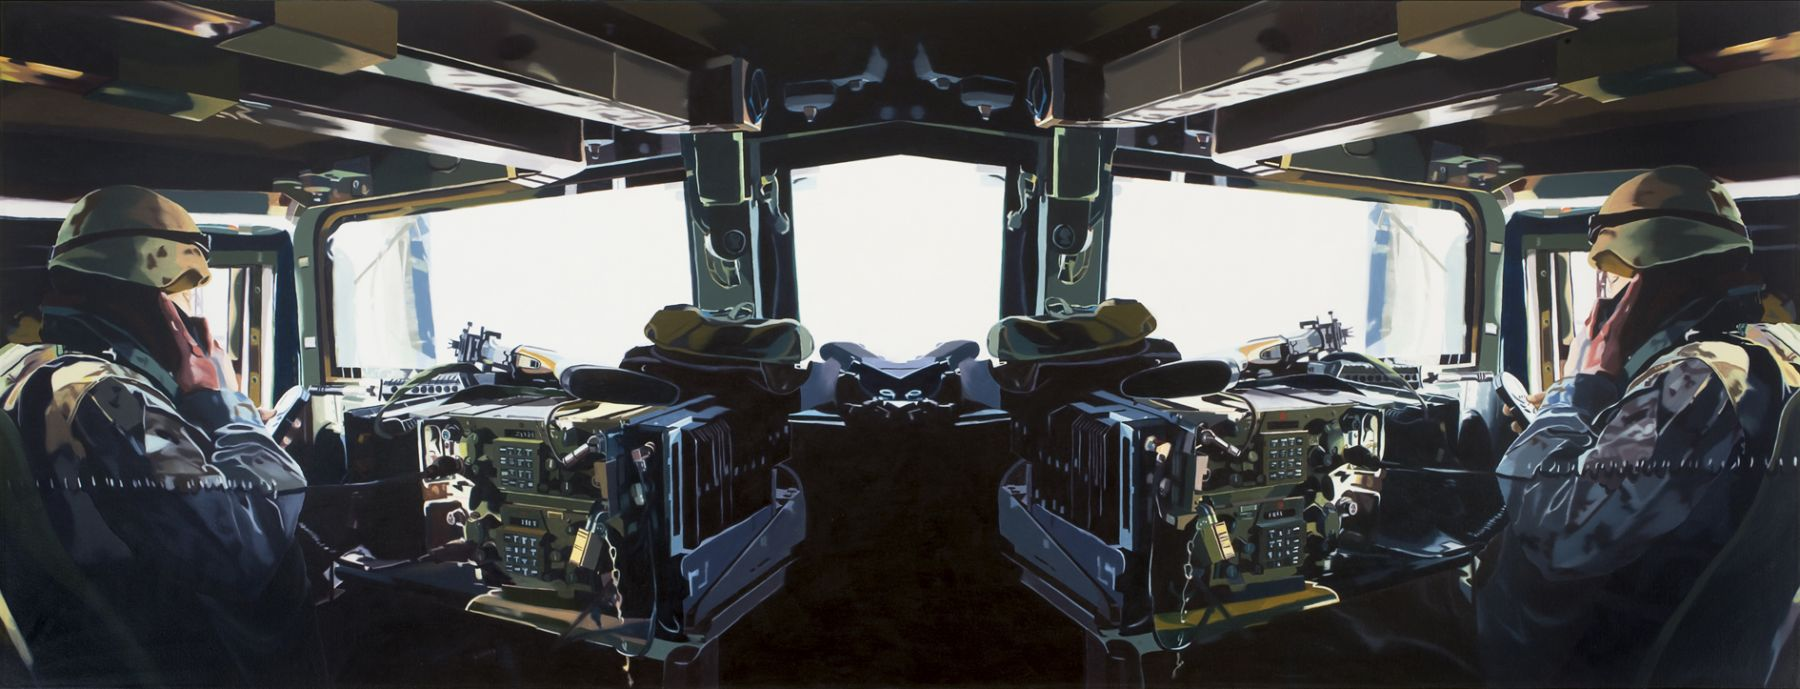 Megan Rye, Drive, 2008, oil on canvas, 42 x 110 inches